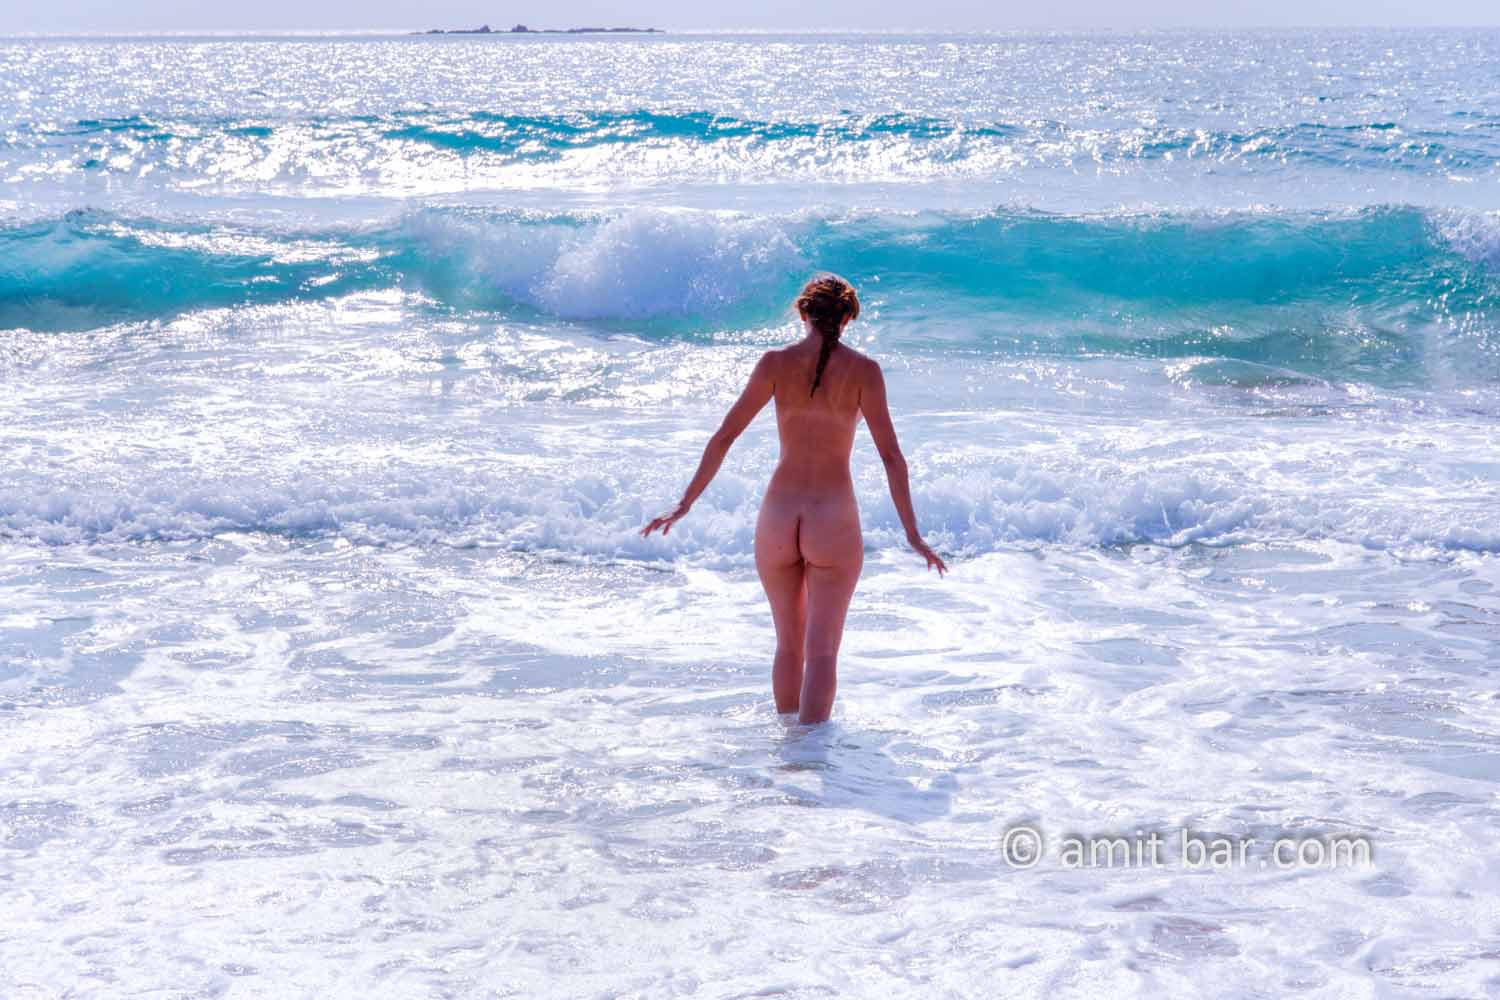 Betset I: Nude model in the sea beside Betset, Israel